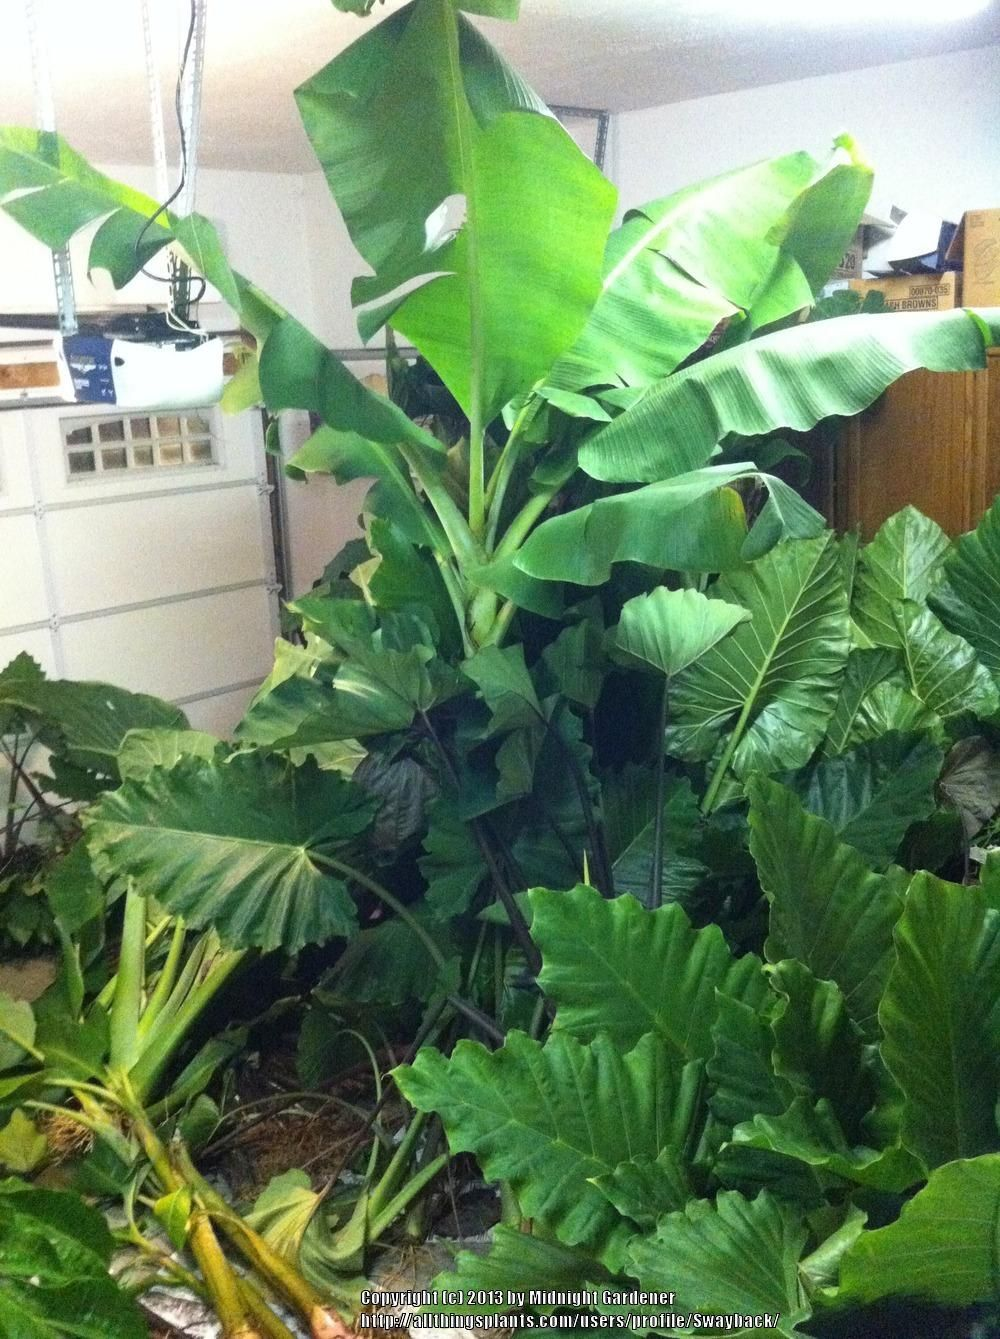 How To Store Elephant Ears and Other Tropical Bulbs #elephantearsandtropicals